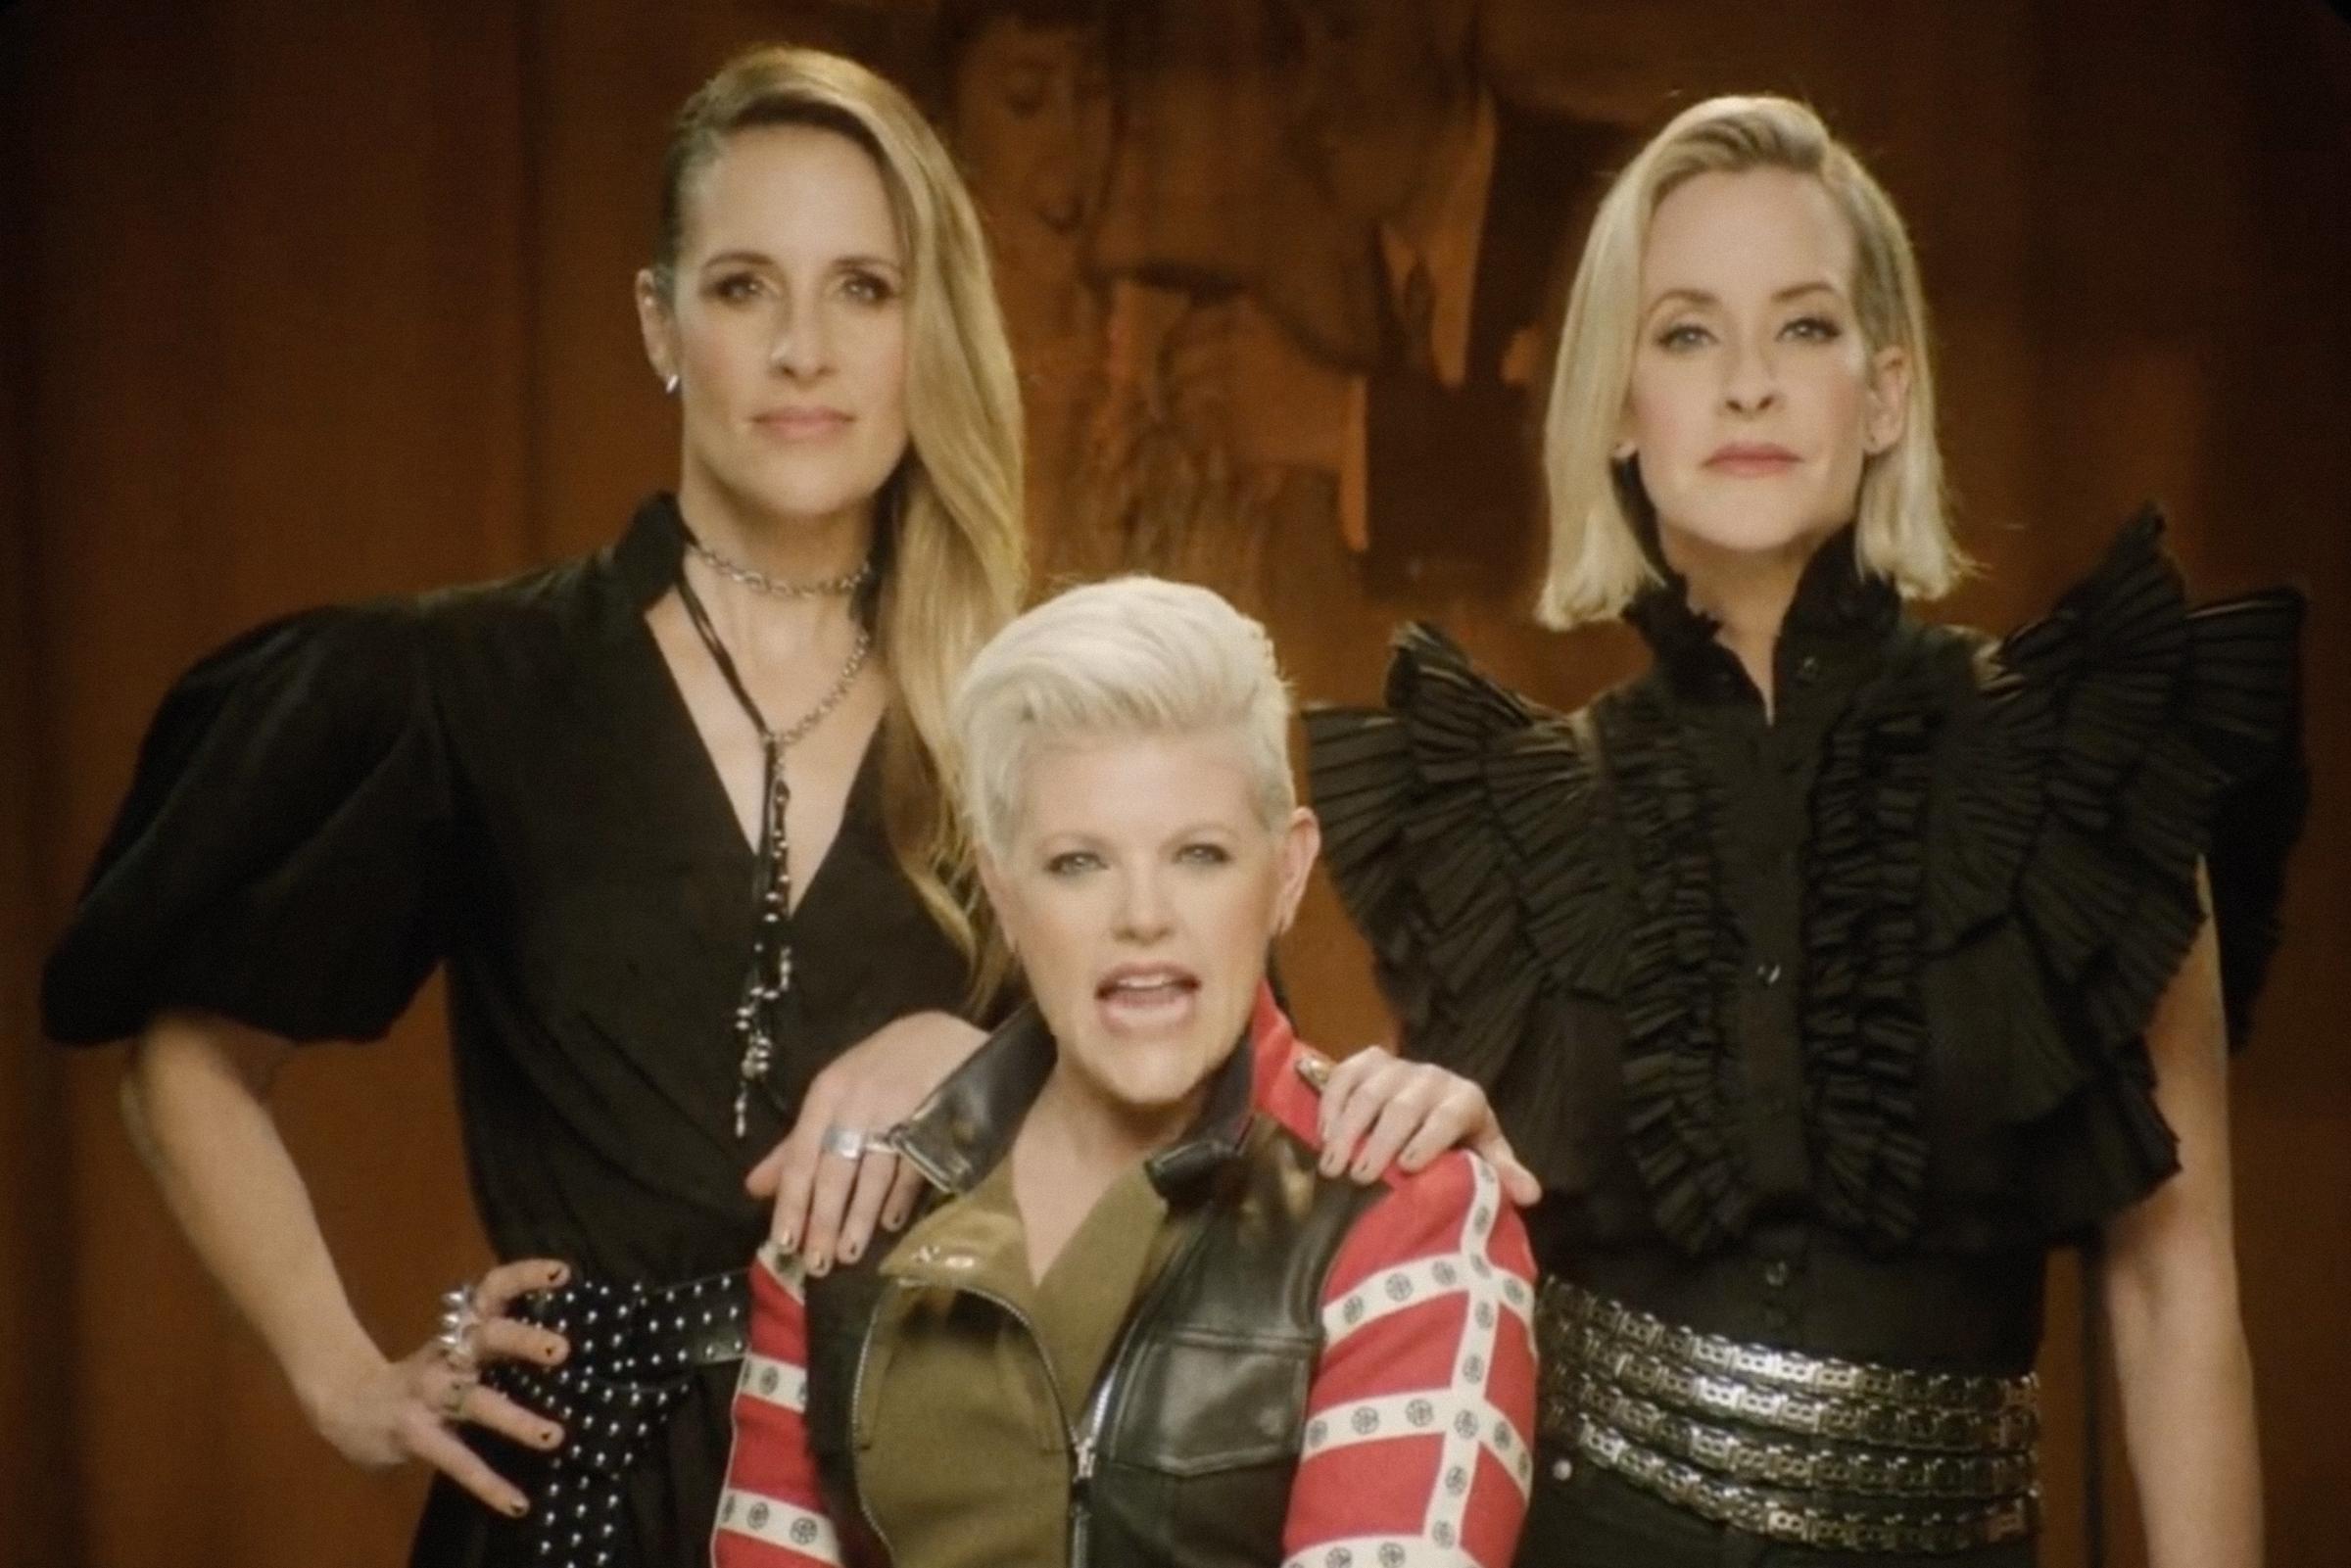 The Dixie Chicks, three white women, two with long hair, one with short hair, stand close together, their hands on each other's shoulders, each wearing bold, flamboyant clothing and an unapologetic look on their faces.